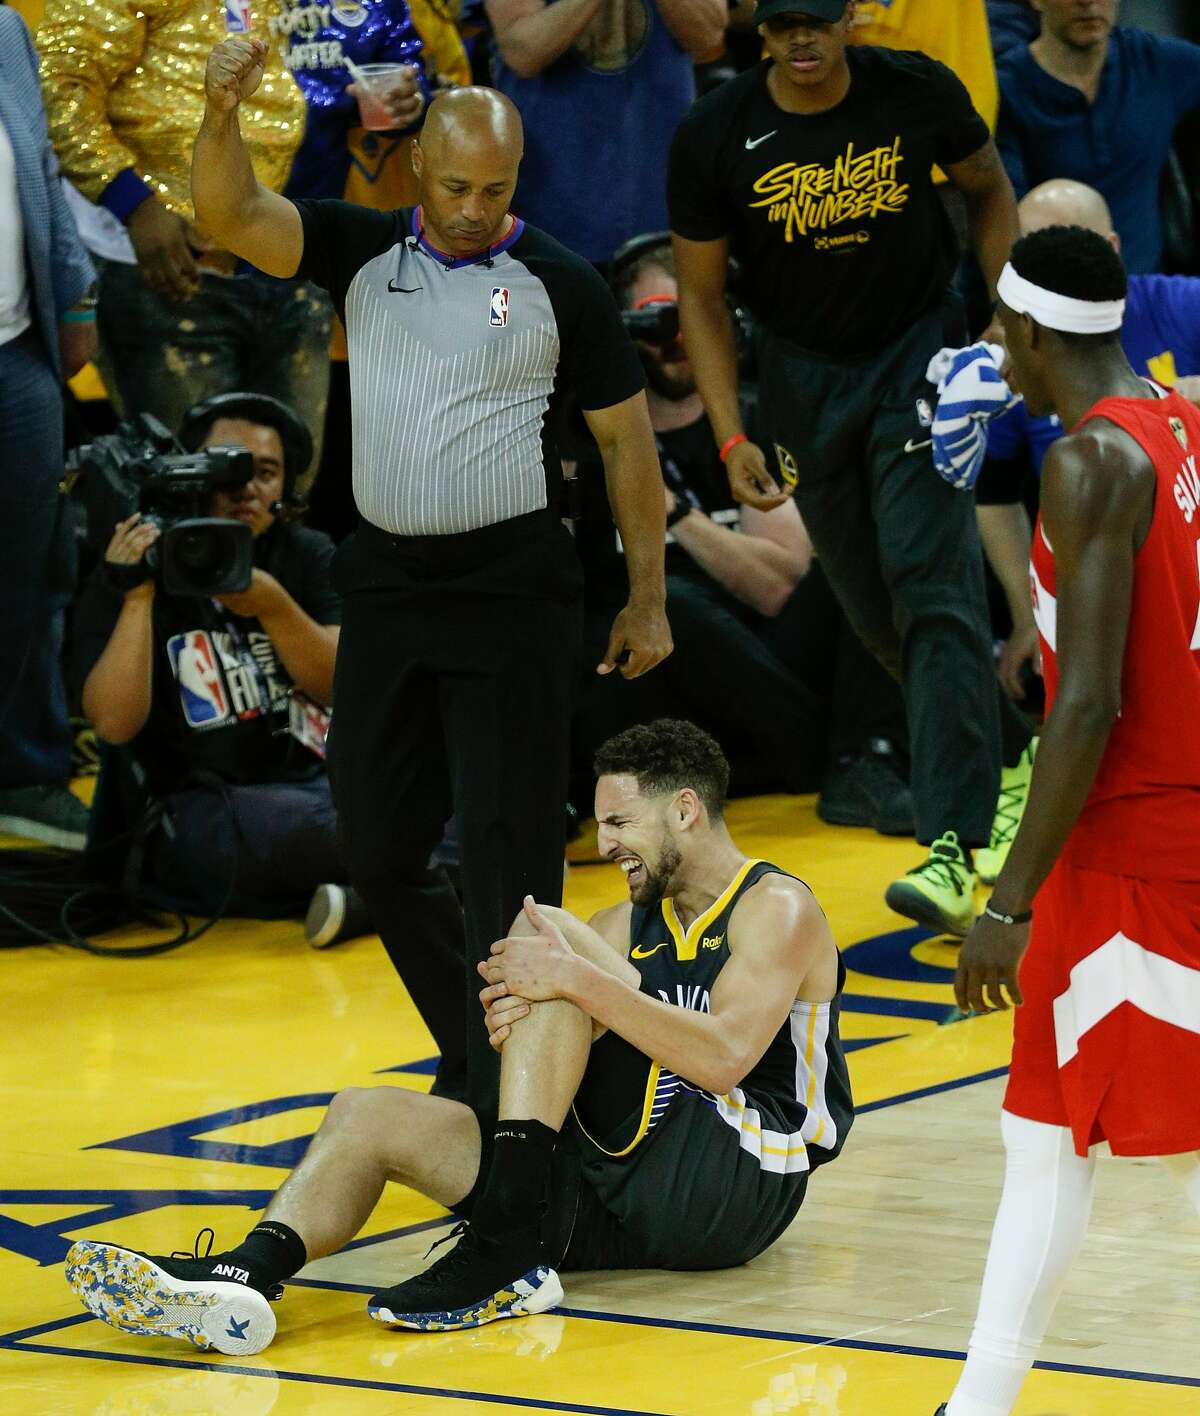 Golden State Warriors' Klay Thompson holds his leg in pain in the third quarter during game 6 of the NBA Finals between the Golden State Warriors and the Toronto Raptors at Oracle Arena on Thursday, June 13, 2019 in Oakland, Calif.